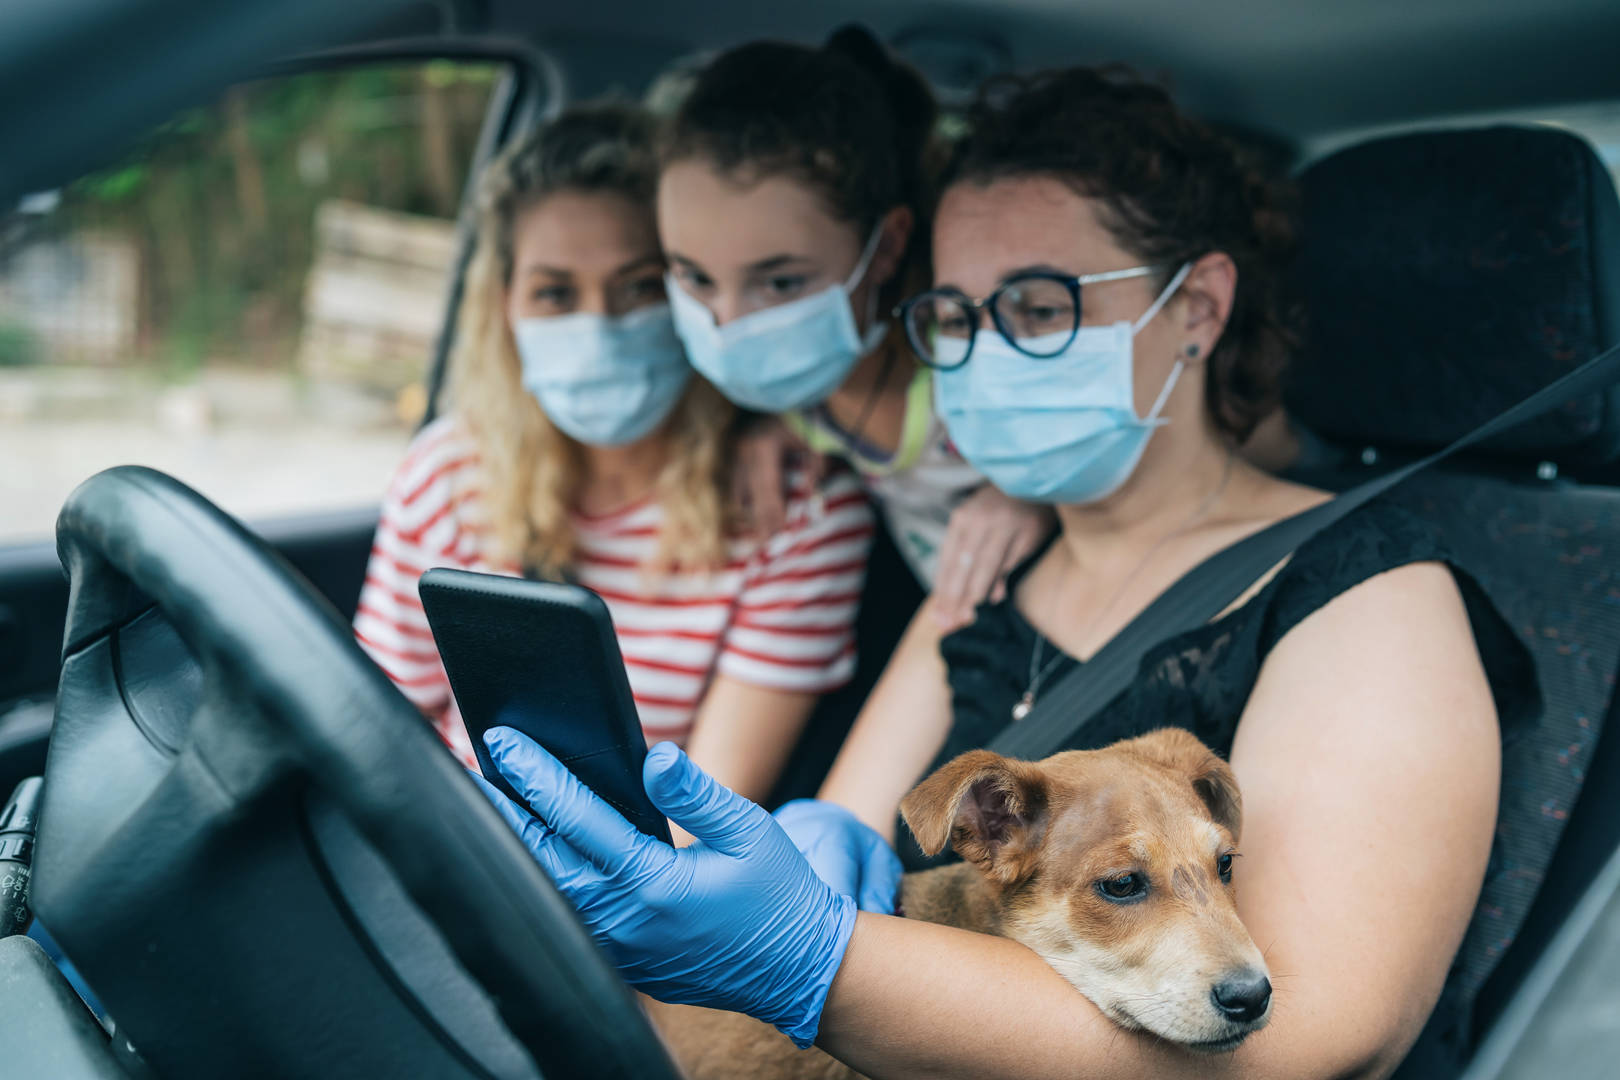 Family waits for vet appointment in car